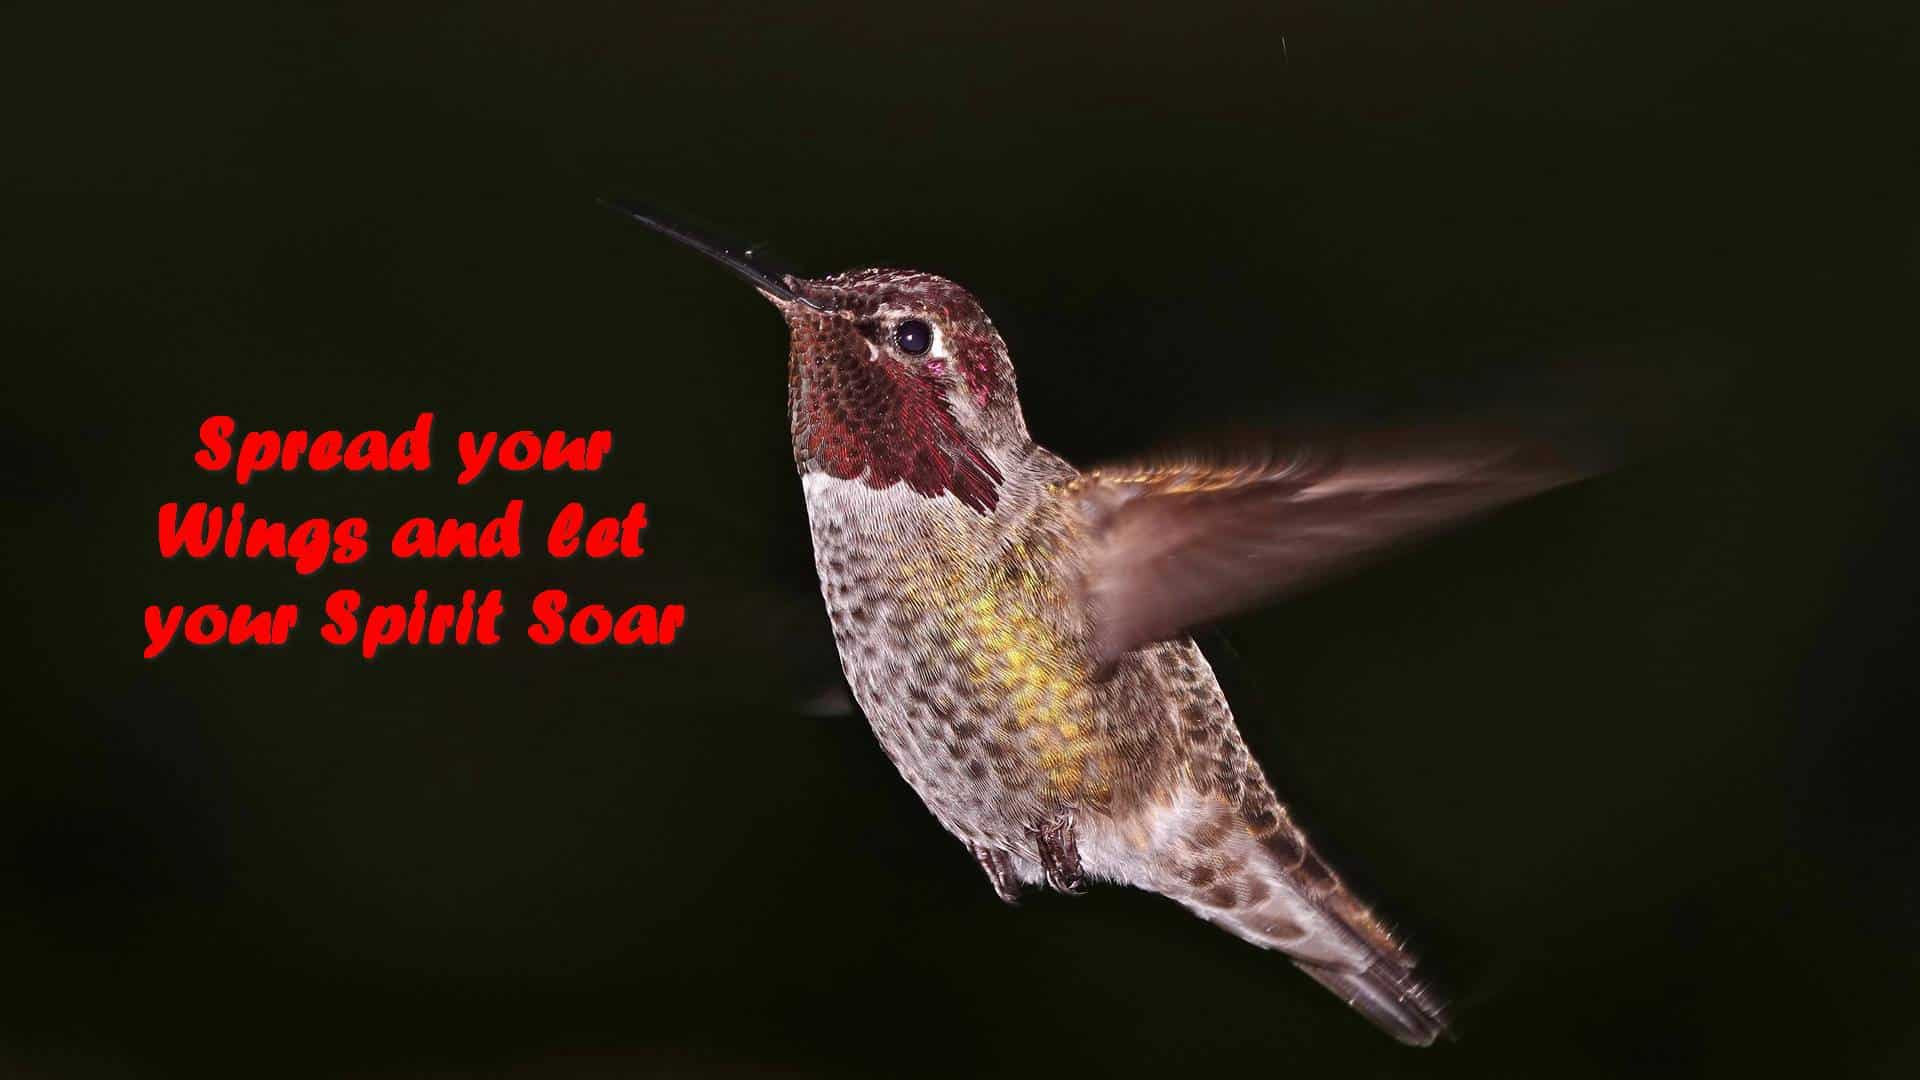 Spread your Wings and let your Spirit Soar